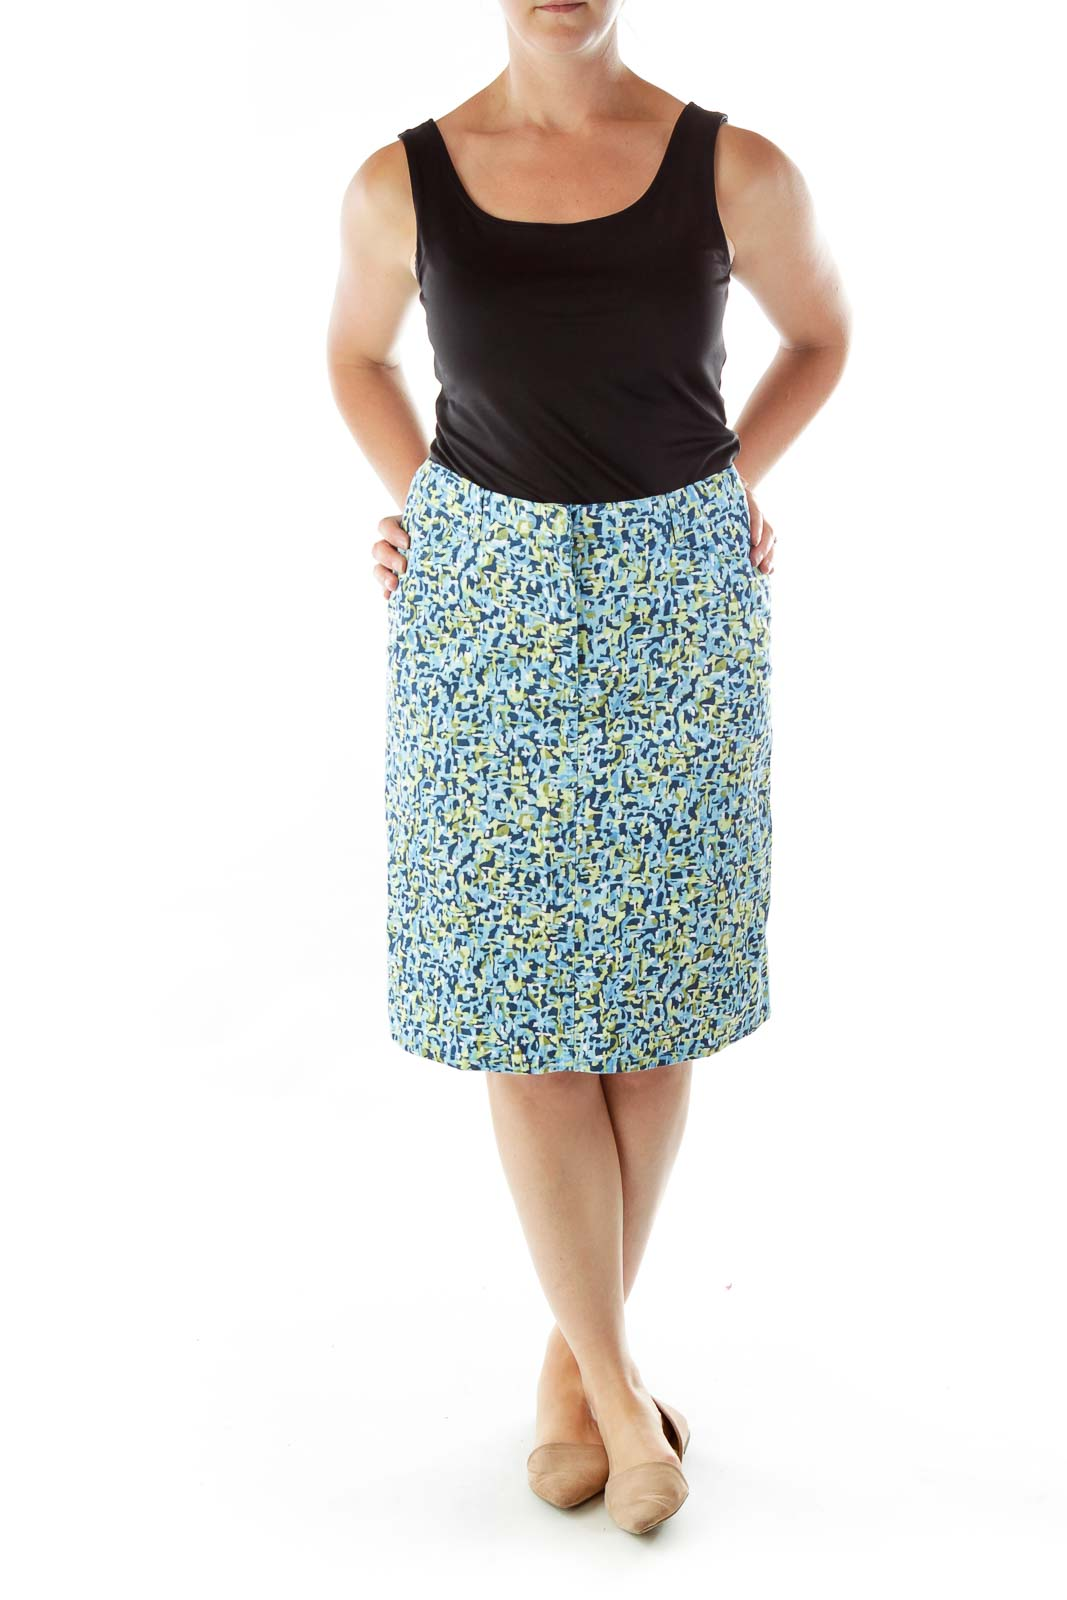 Petite Blue Green Printed A-line Skirt